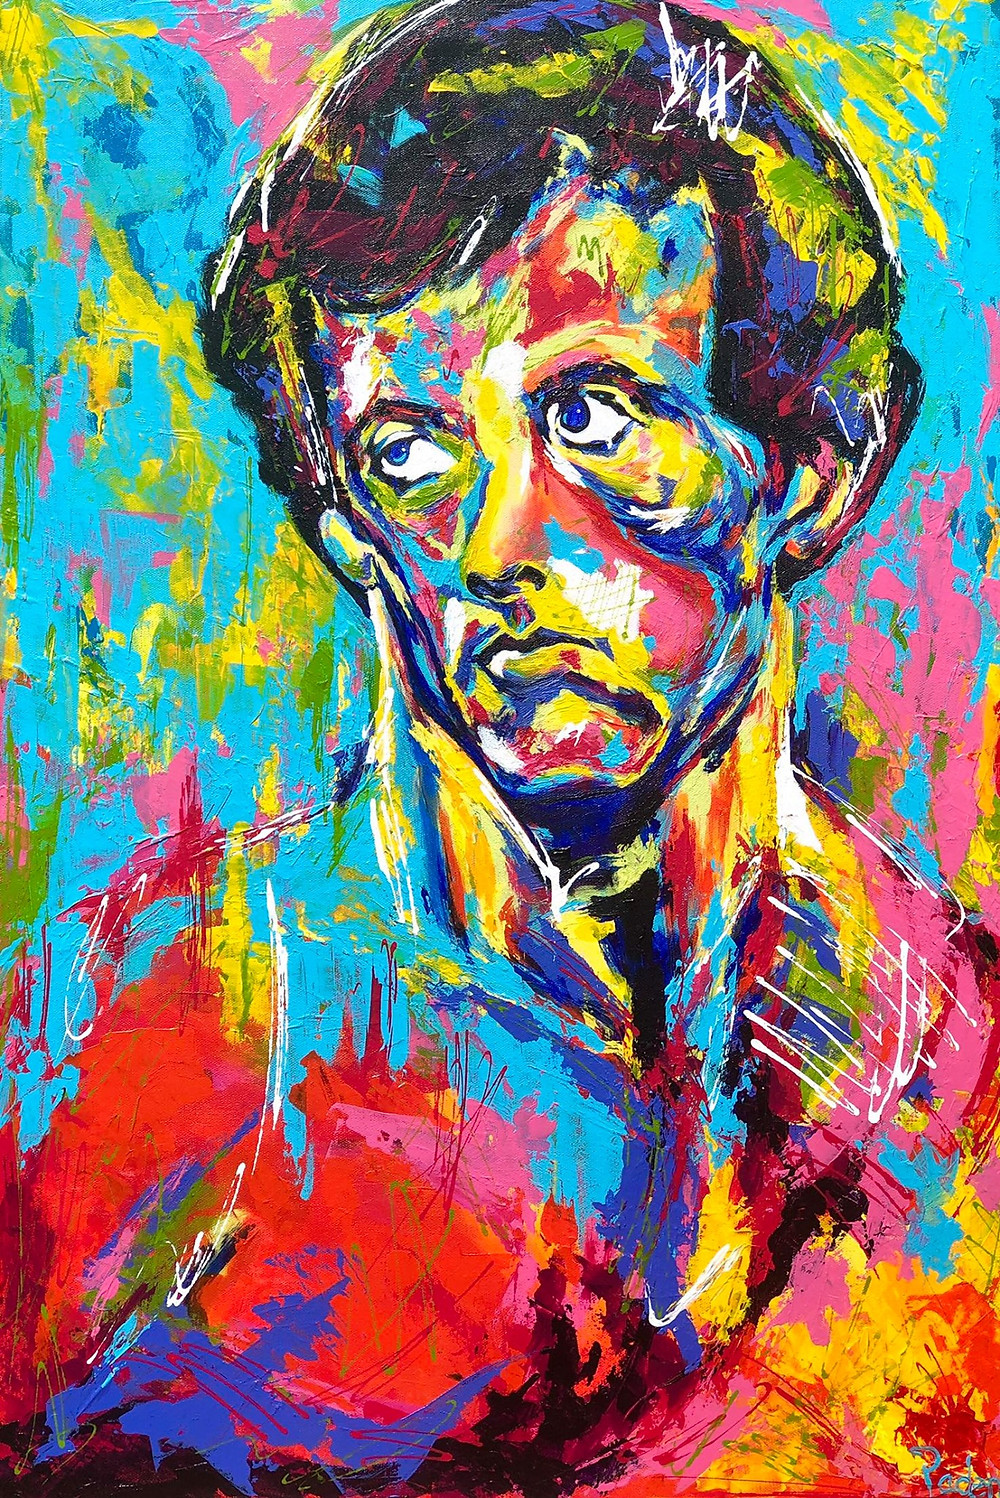 Spontaneous Realism Portrait of Sylvester Stallone by Matthew R. Paden